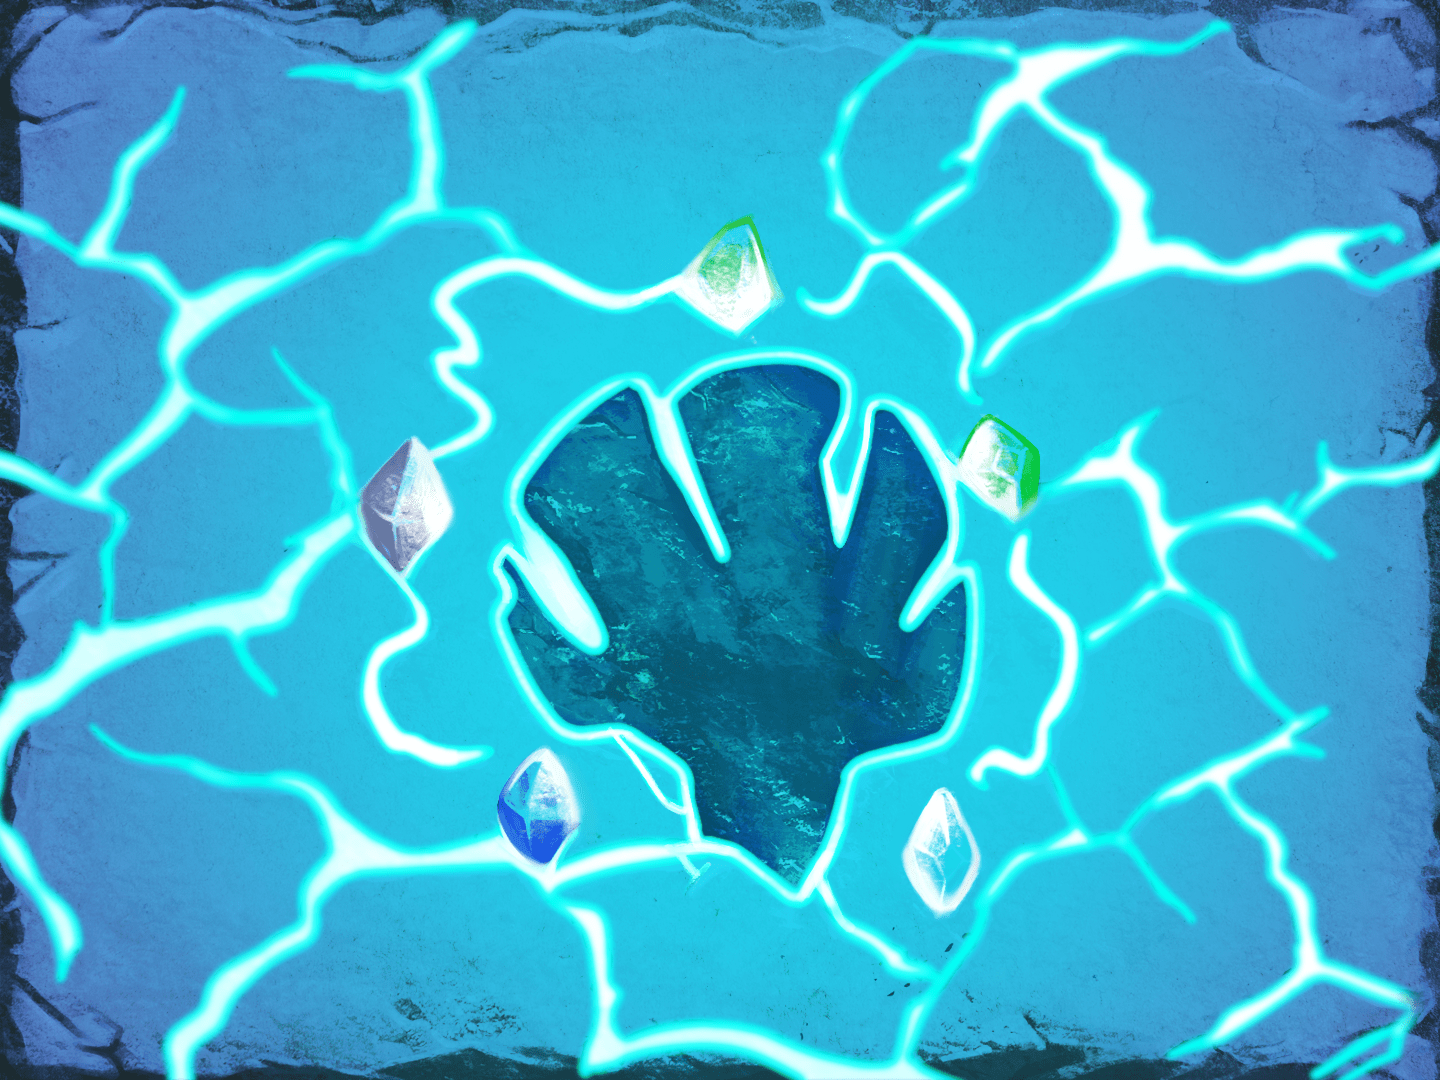 An etching of The Ancient's head surrounded by colorful Runes, on a blue background with white, glowing cracks in it.